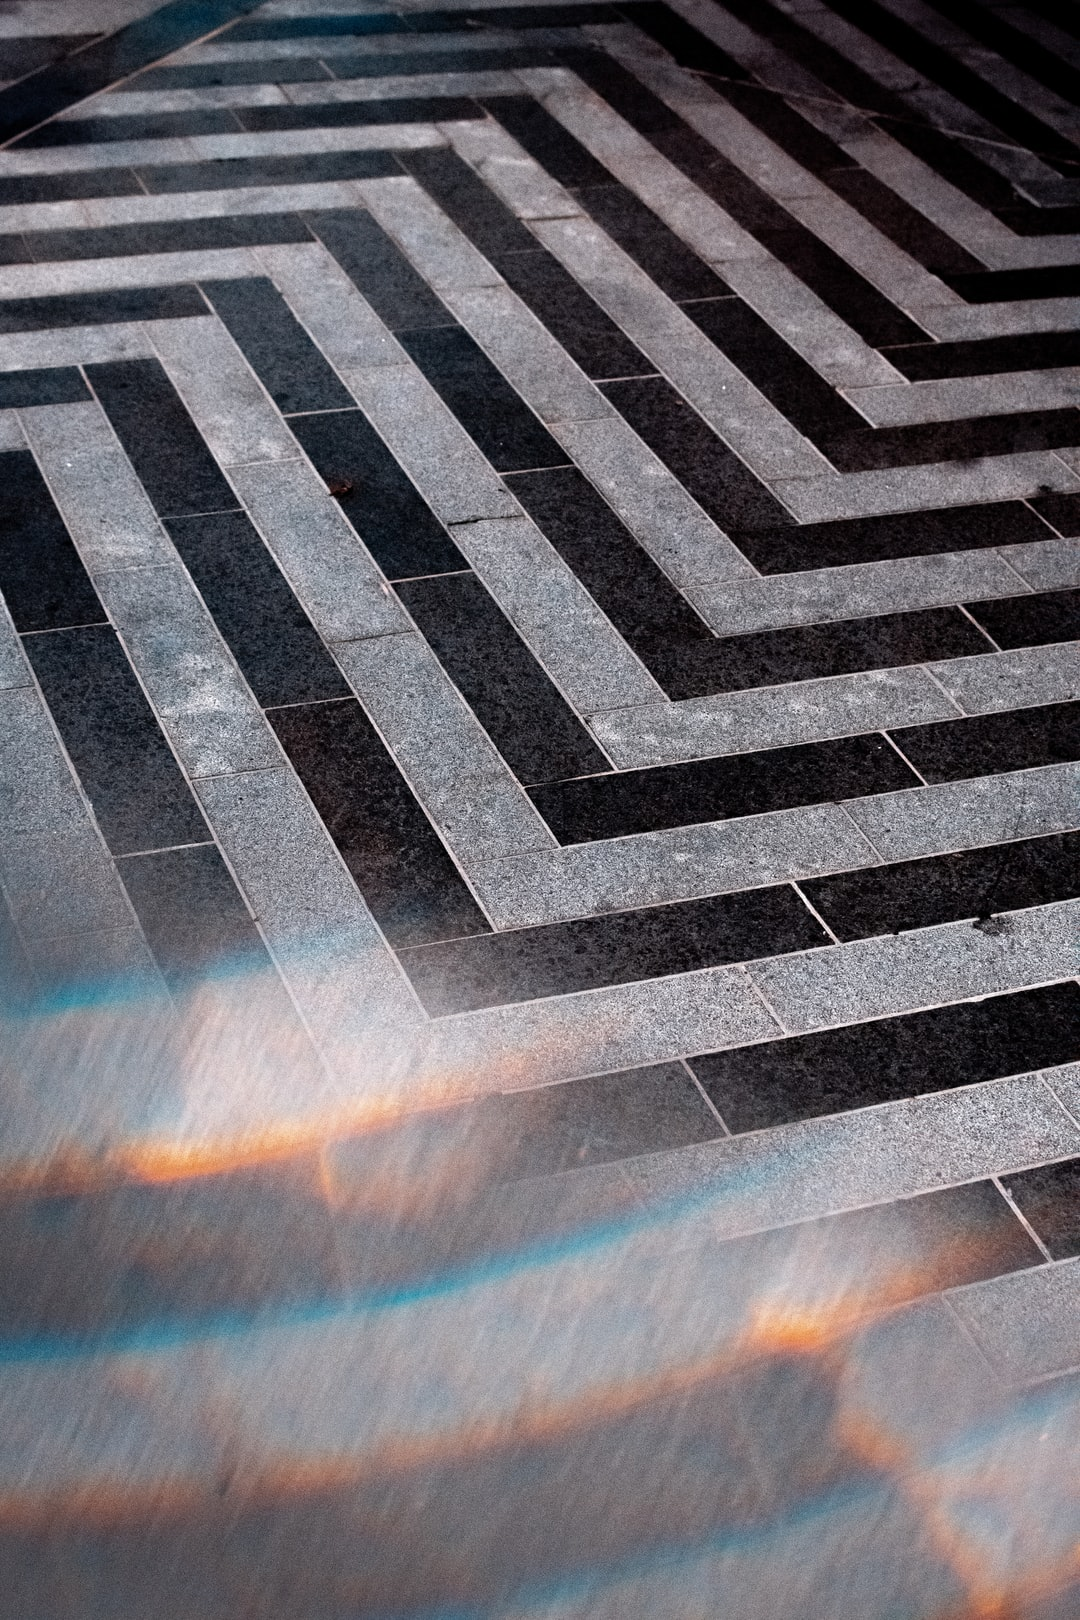 a street floor pattern found in Brisbanes Fortitude Valley with a light refraction reflection